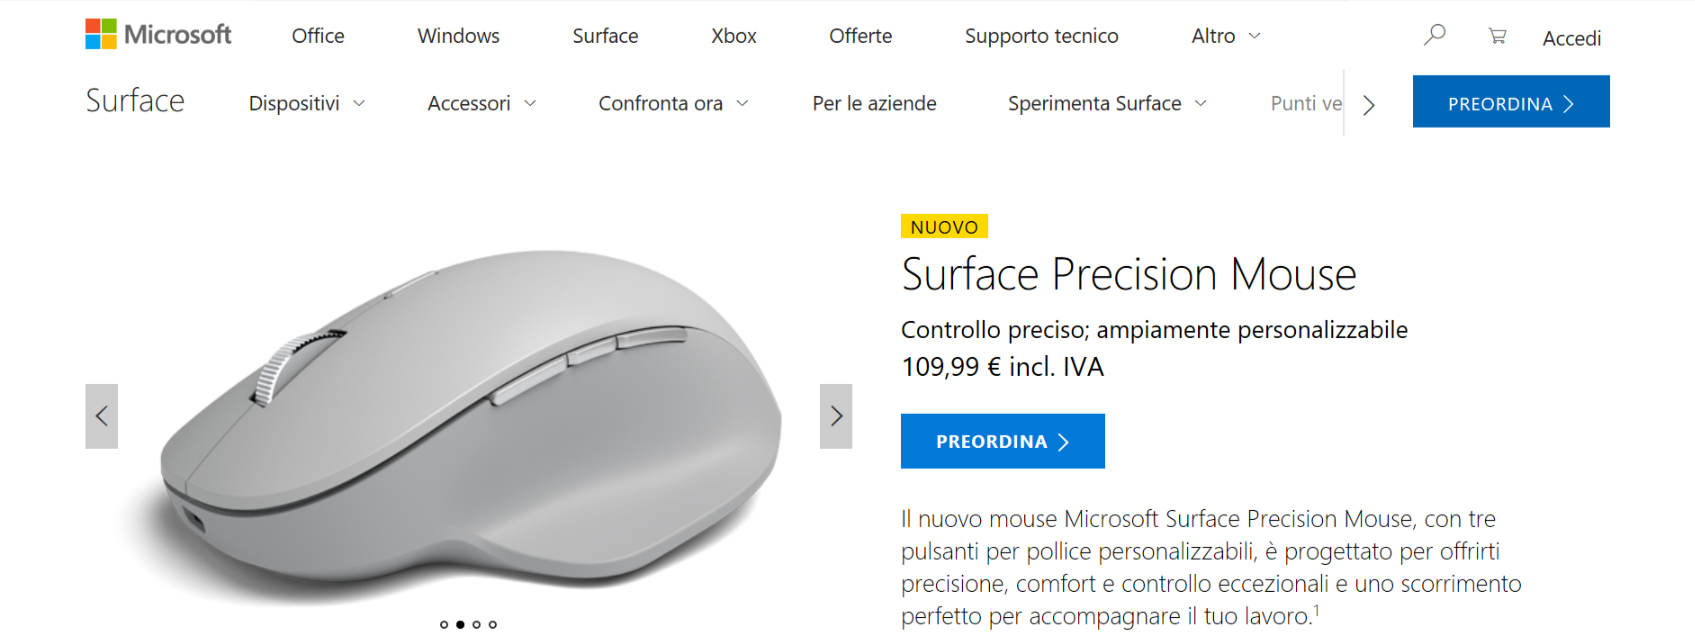 surface precision mouse store